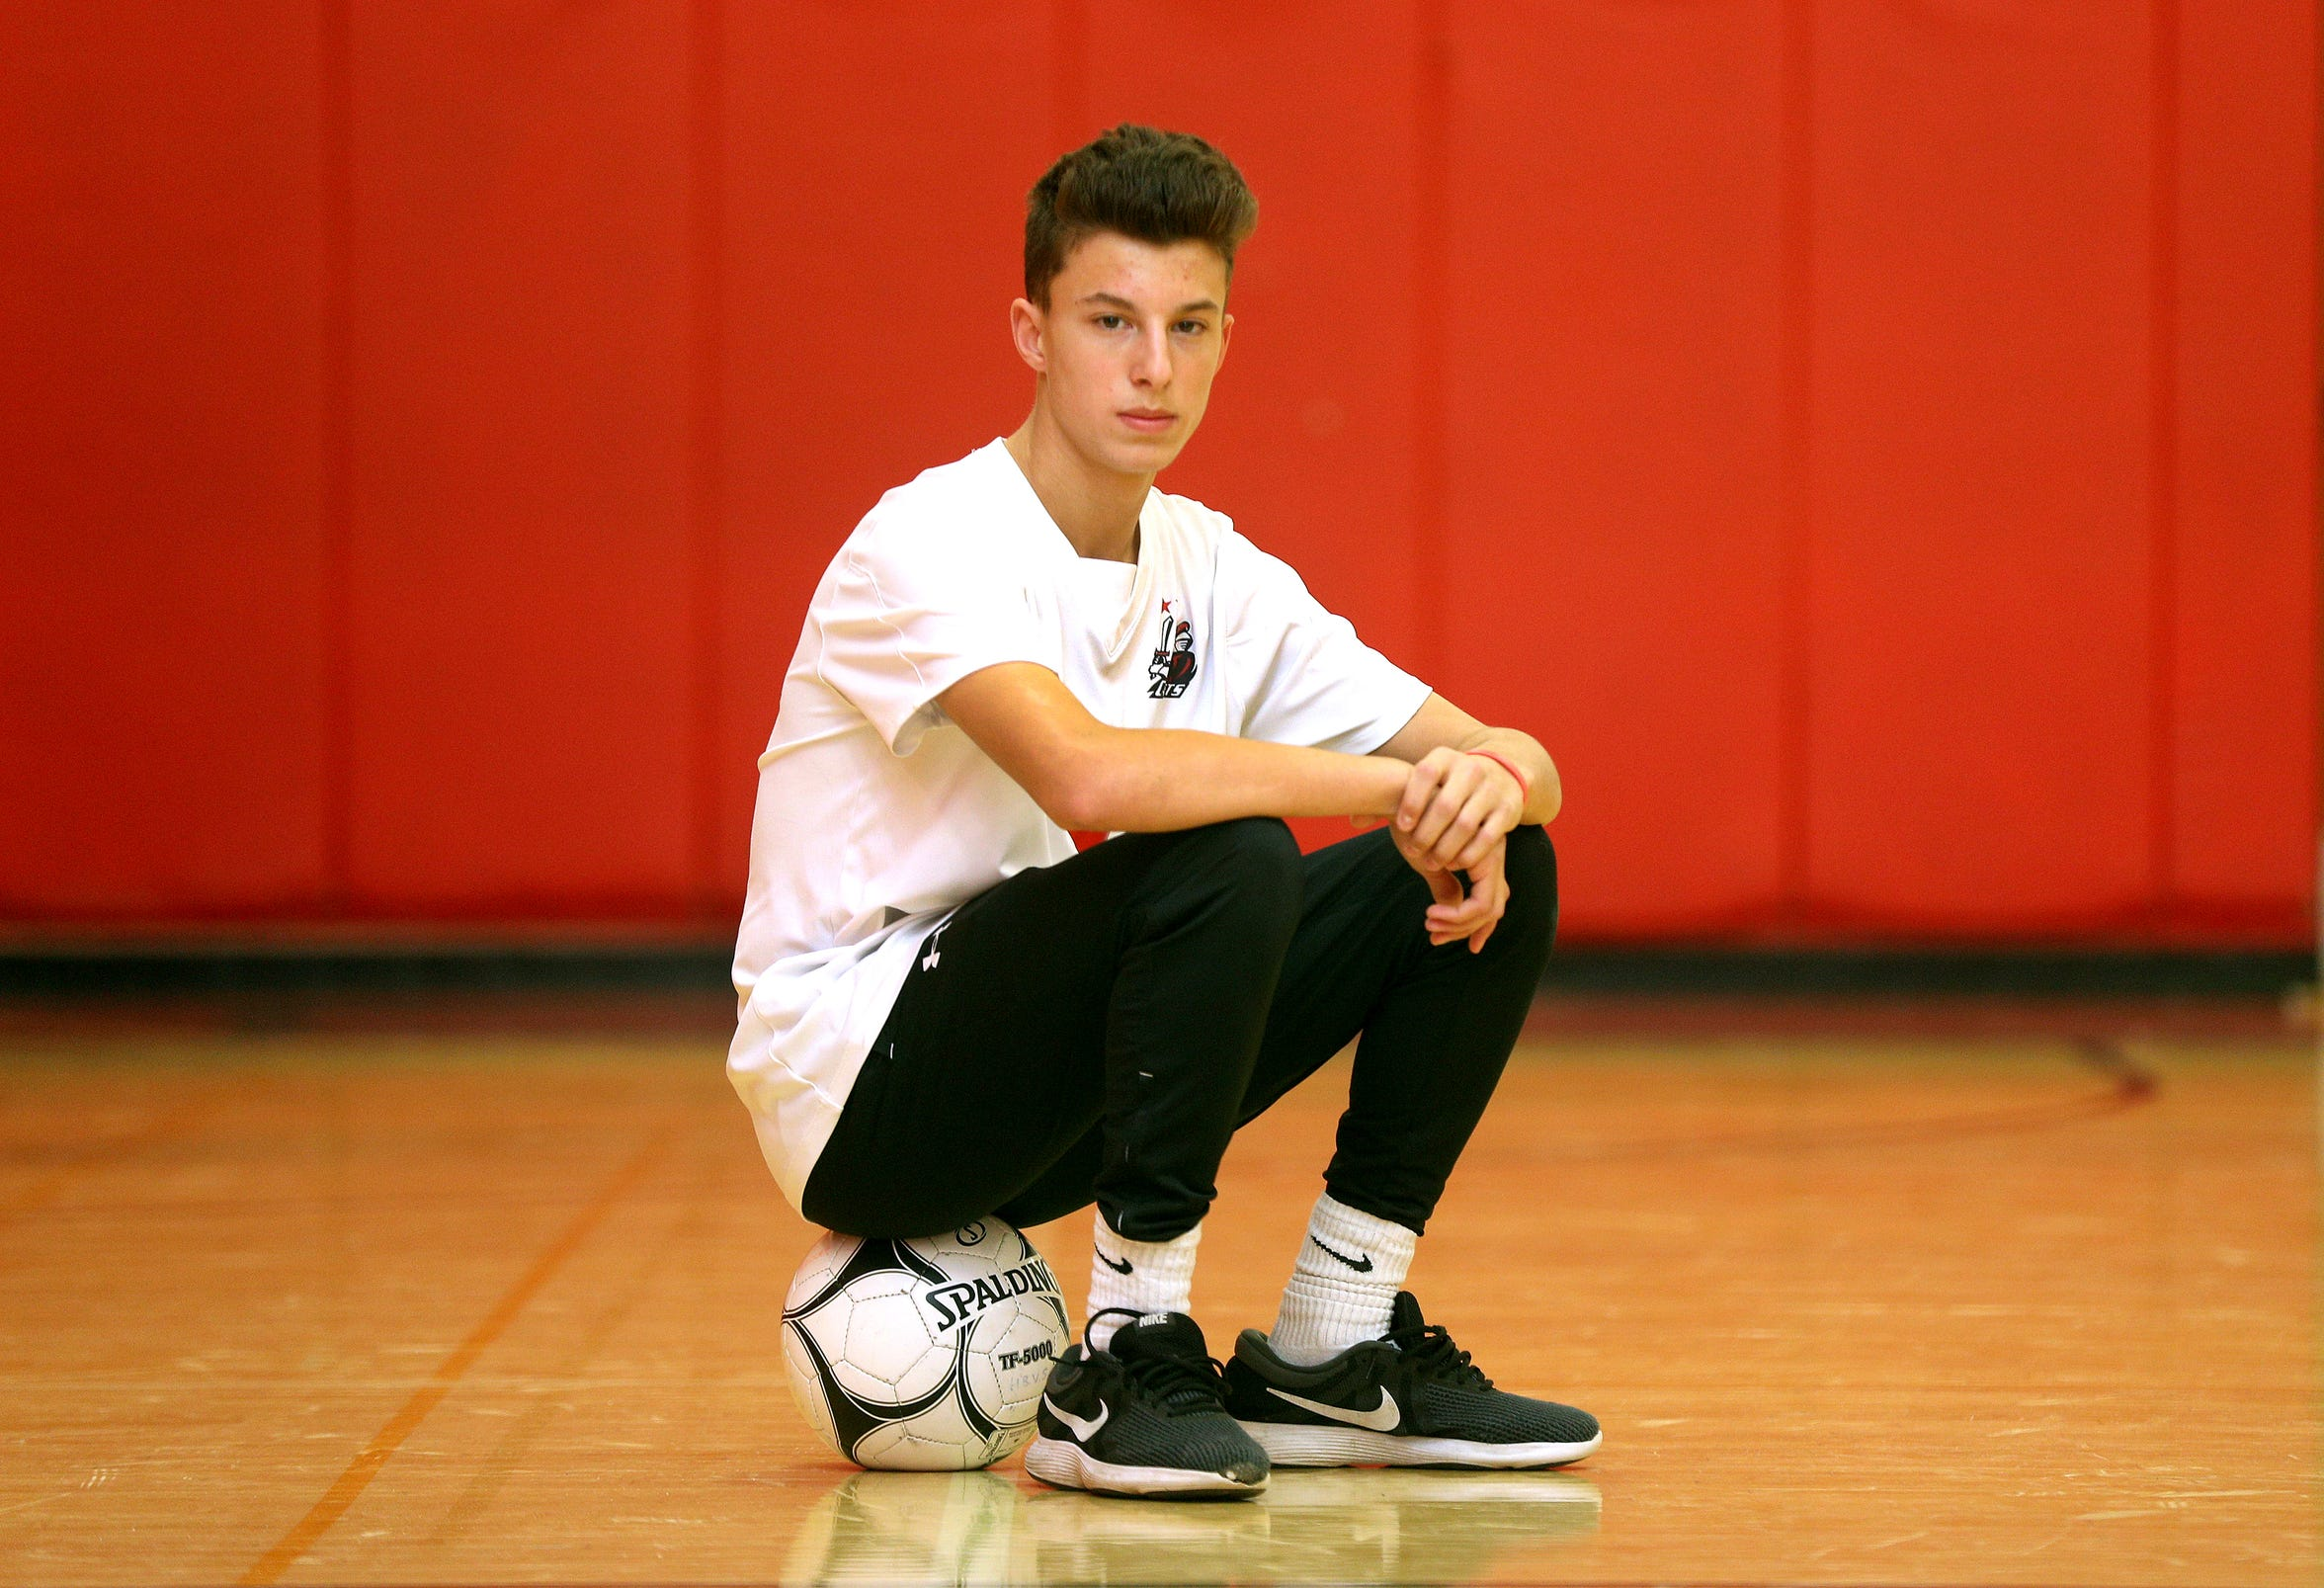 Hilton's Justin Arilotta is the All Greater Rochester boy's soccer player of the year.